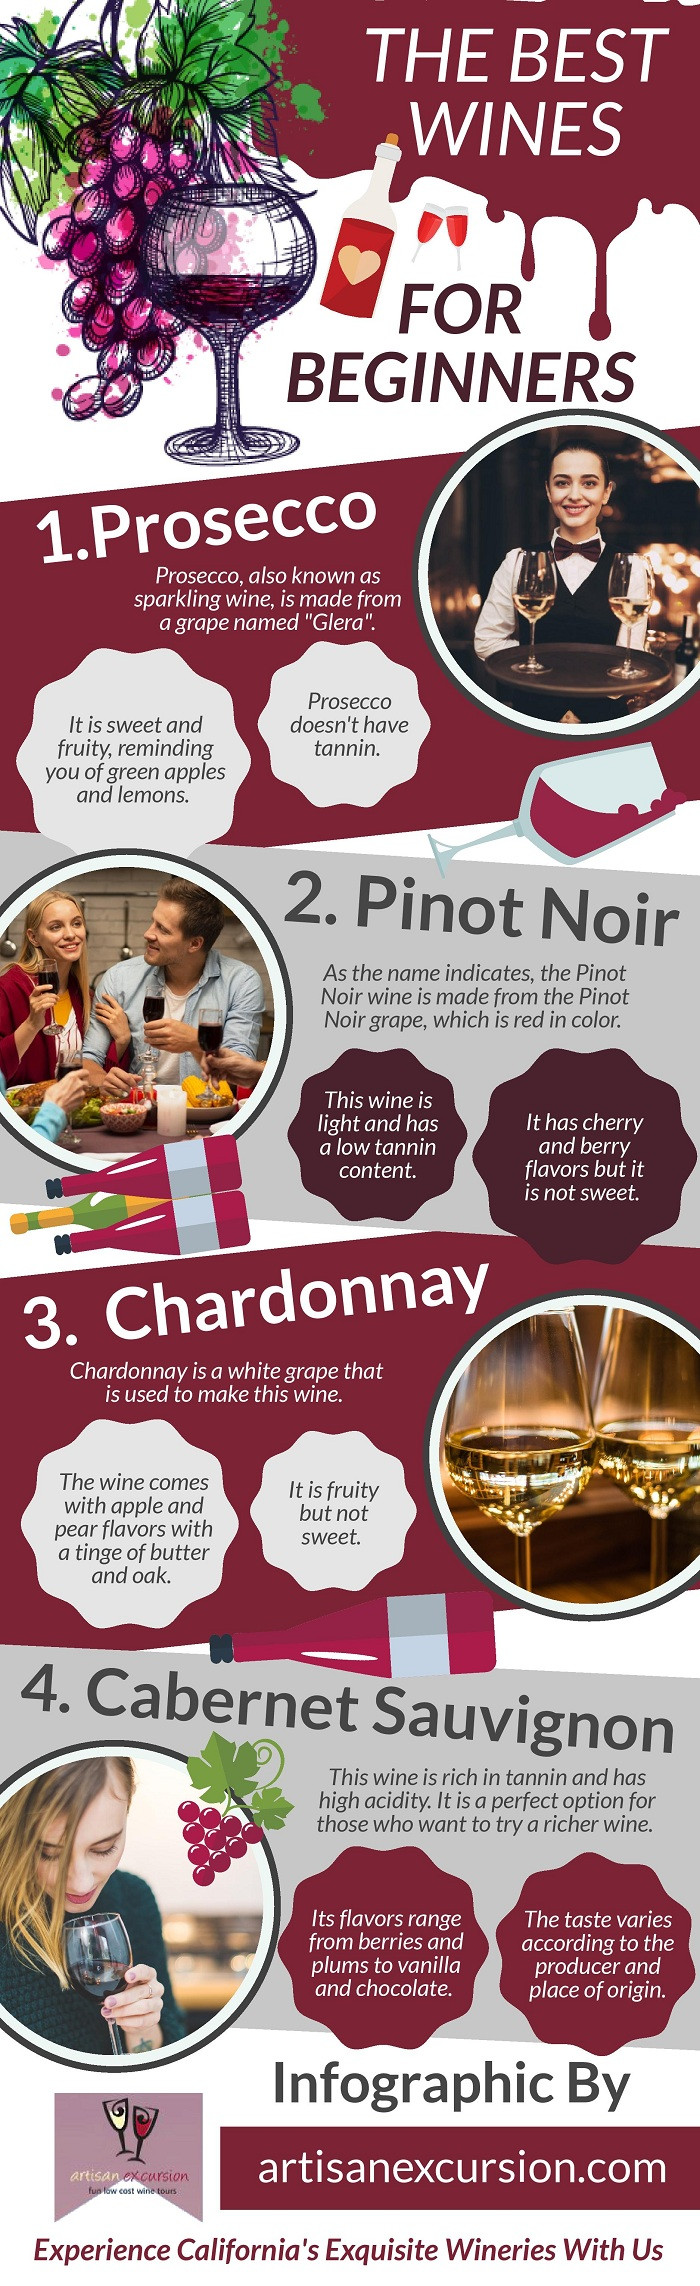 The Best Wines For Beginners